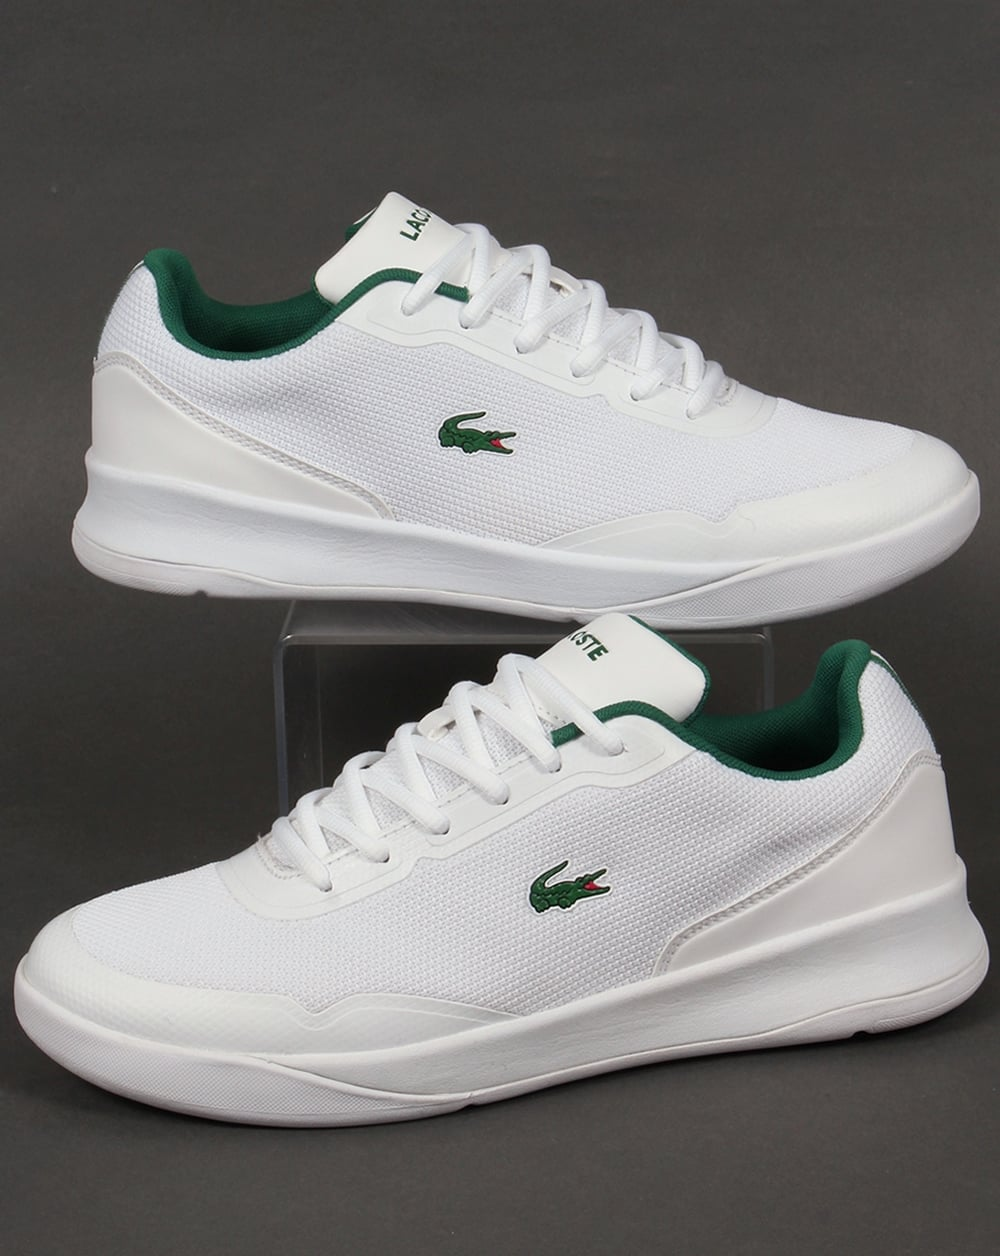 Latest Lacoste Shoes For Ladies